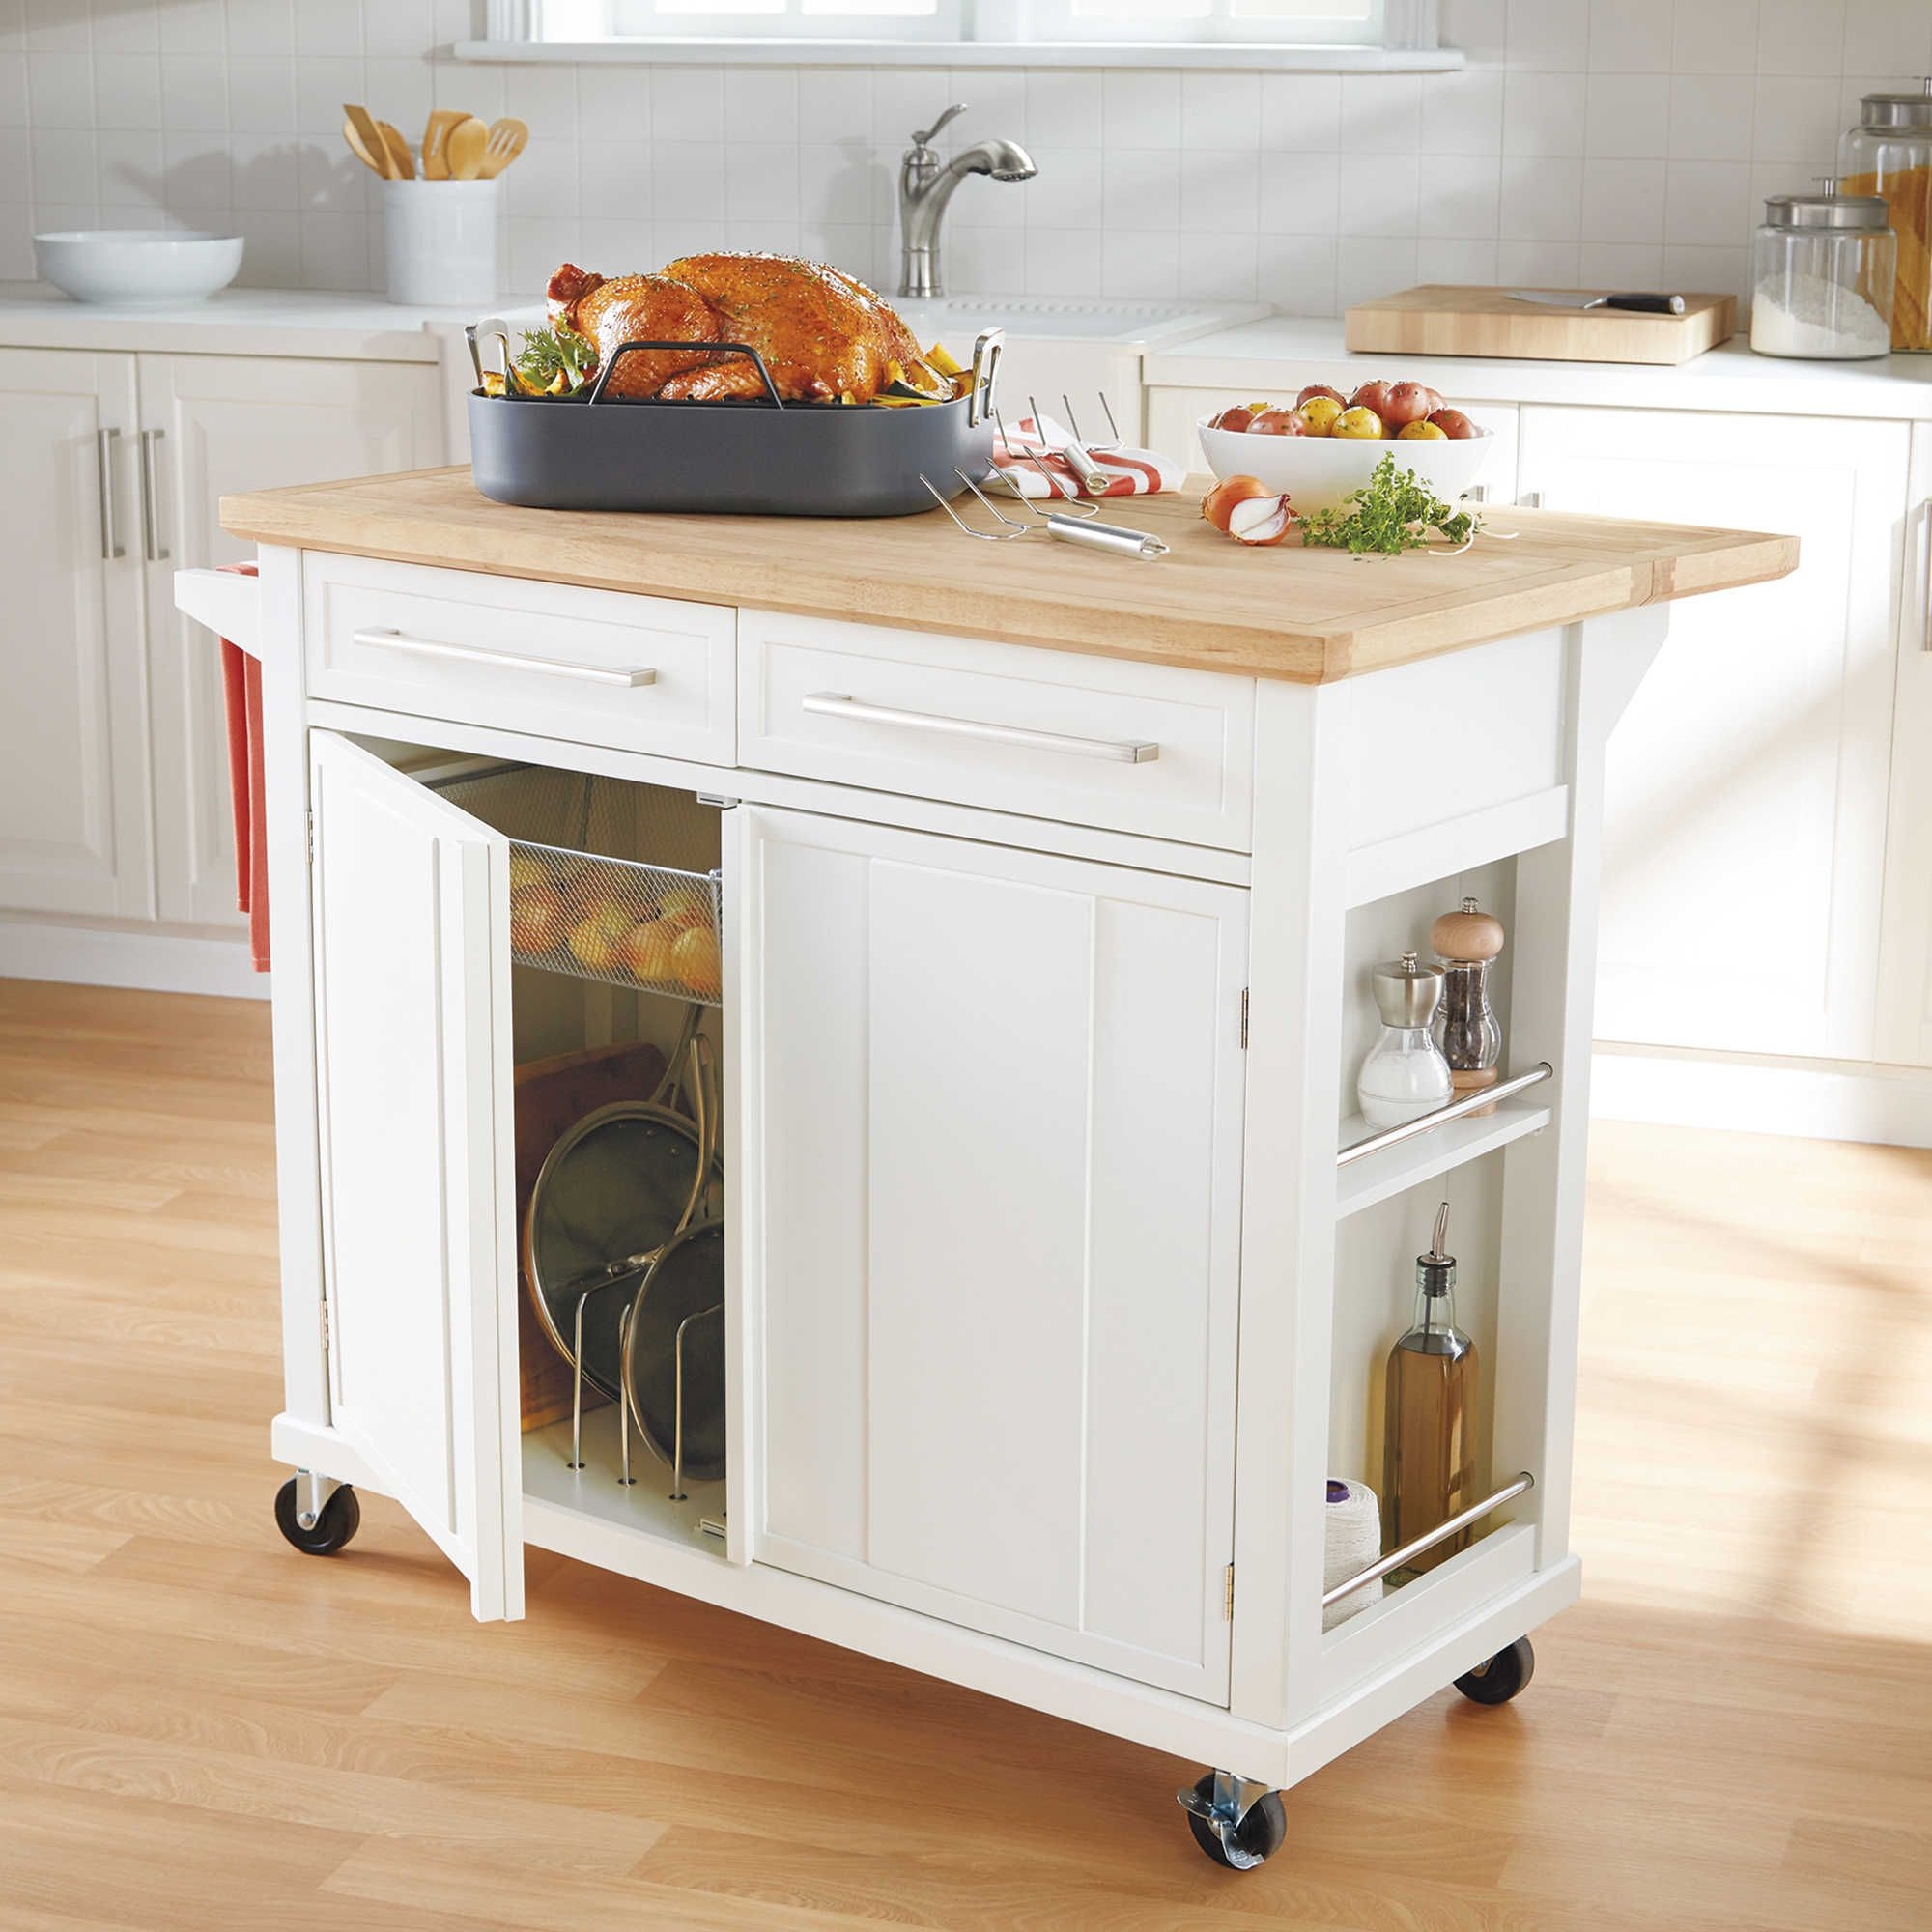 Rolling Kitchen Island Ideas Real Simple® Rolling Kitchen Island In White $300 Bed Bath